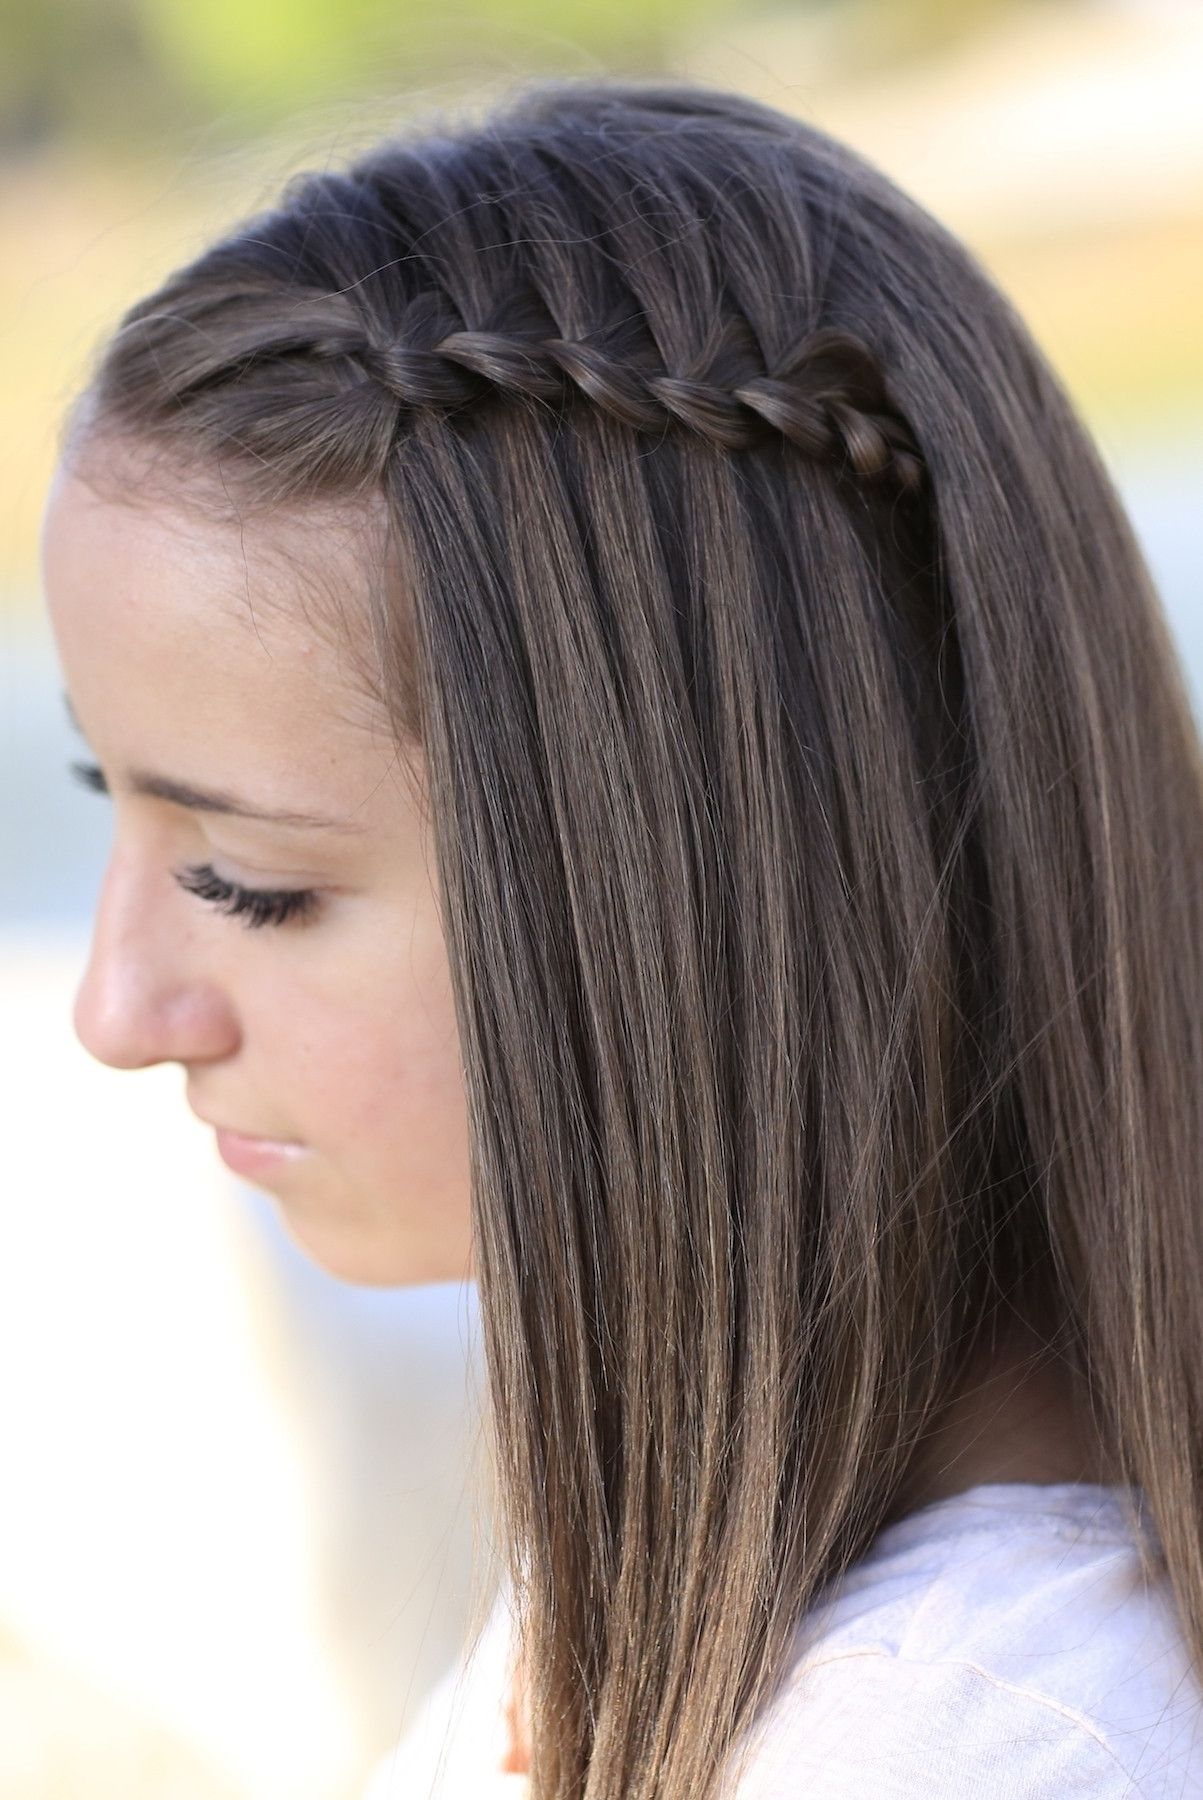 Pin By Annaclariesturtz On Prettyyy Hair Styles Elegant Hairstyles Old Hairstyles